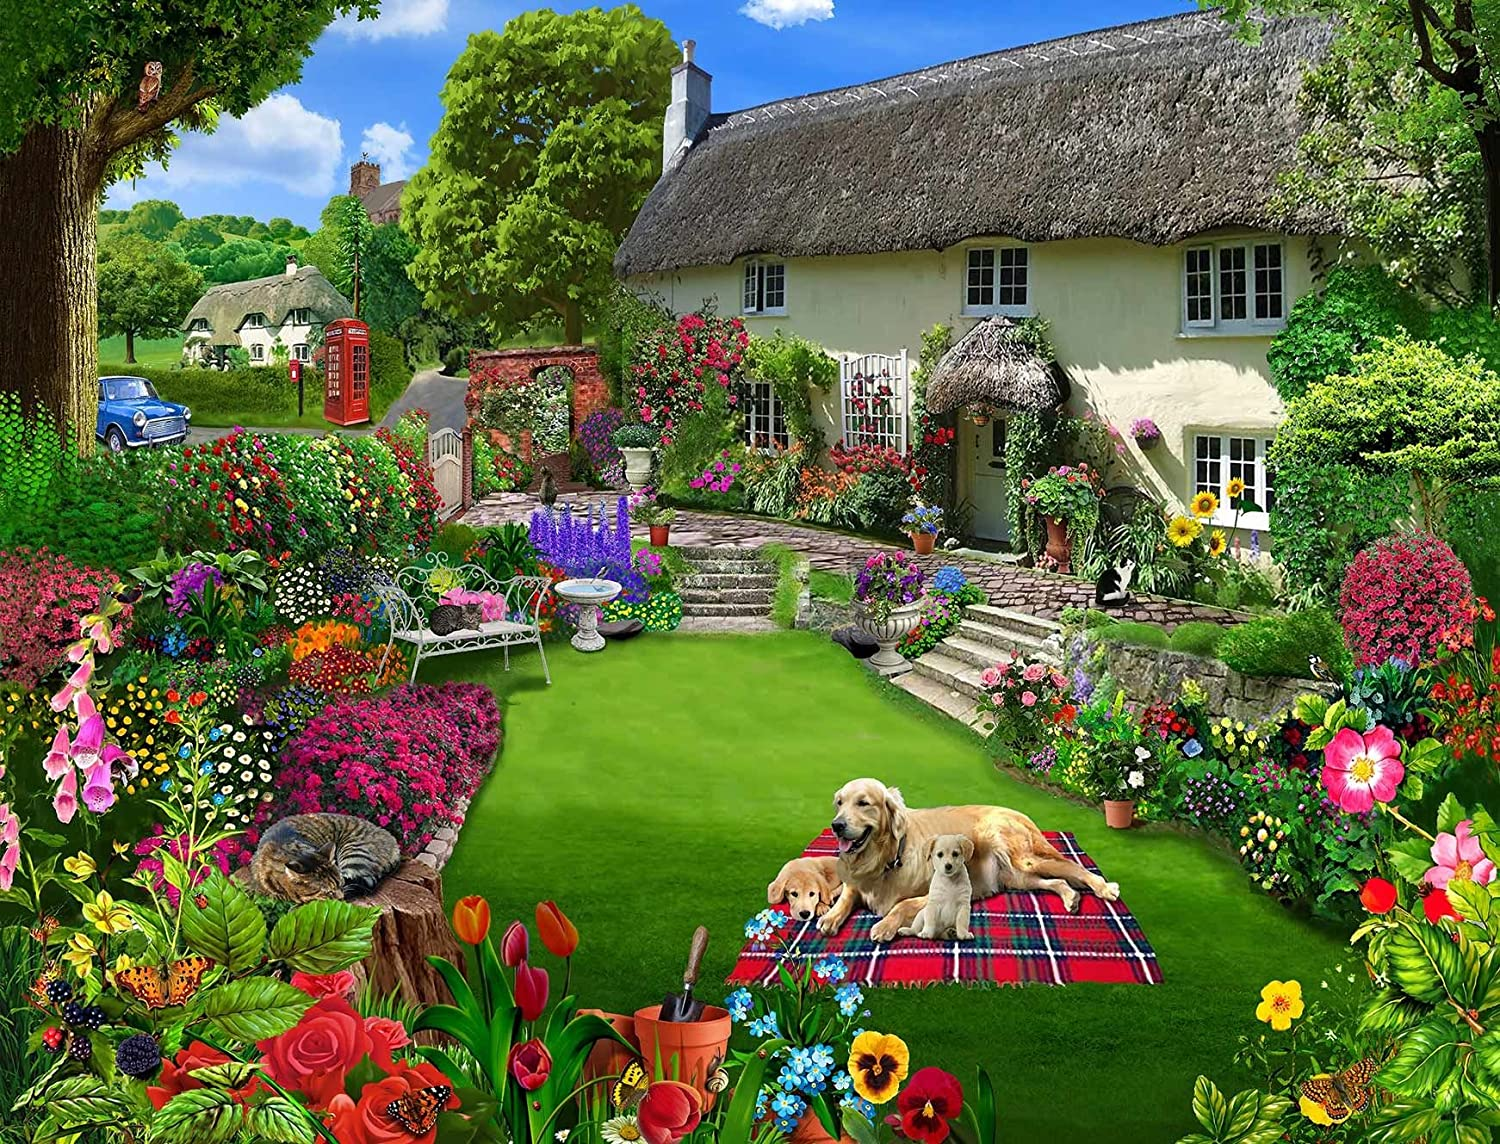 Dogs in a Cottage Garden 1000 Piece Jigsaw Puzzles